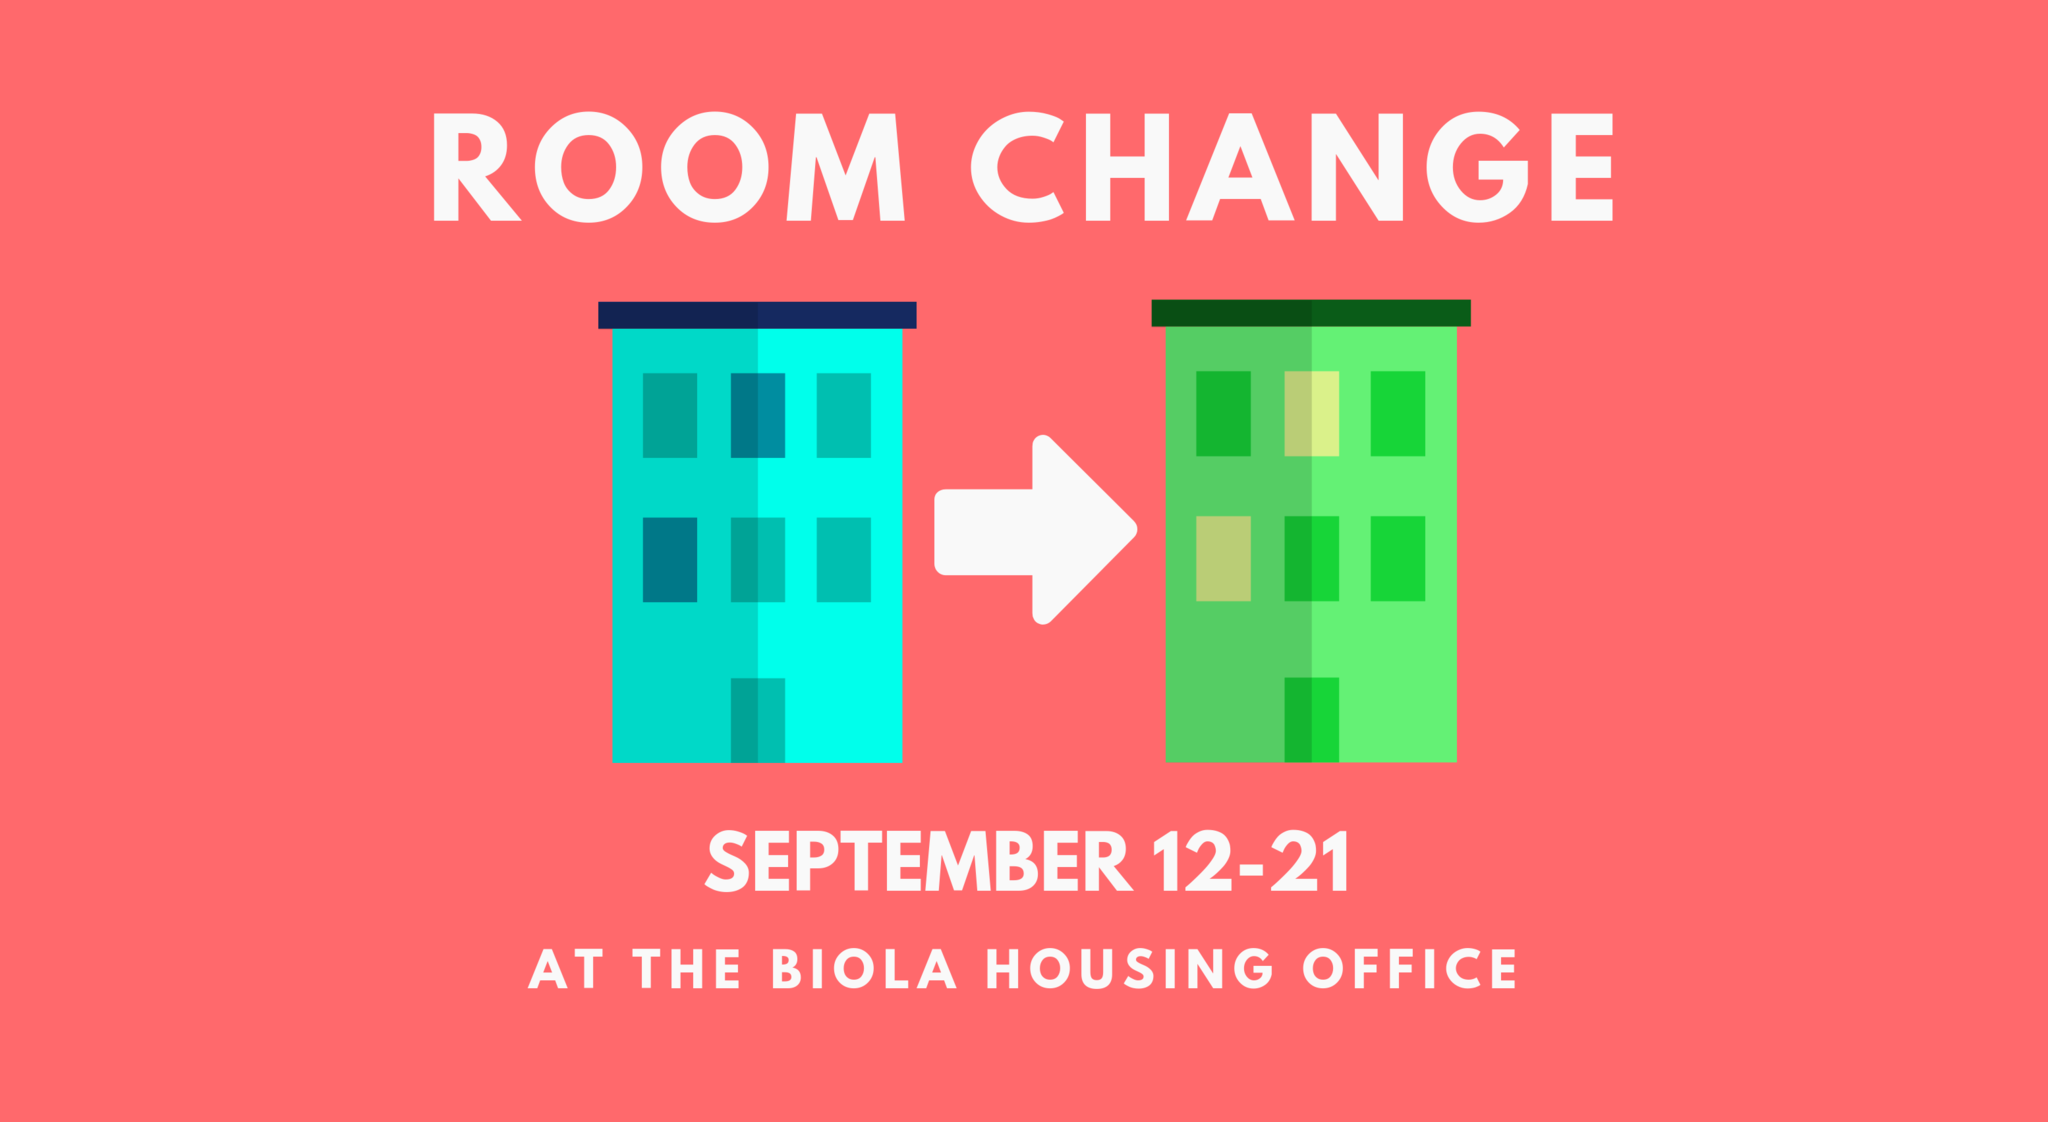 Room Change with blue house pointing at green house September 12-21 at Biola Housing Office